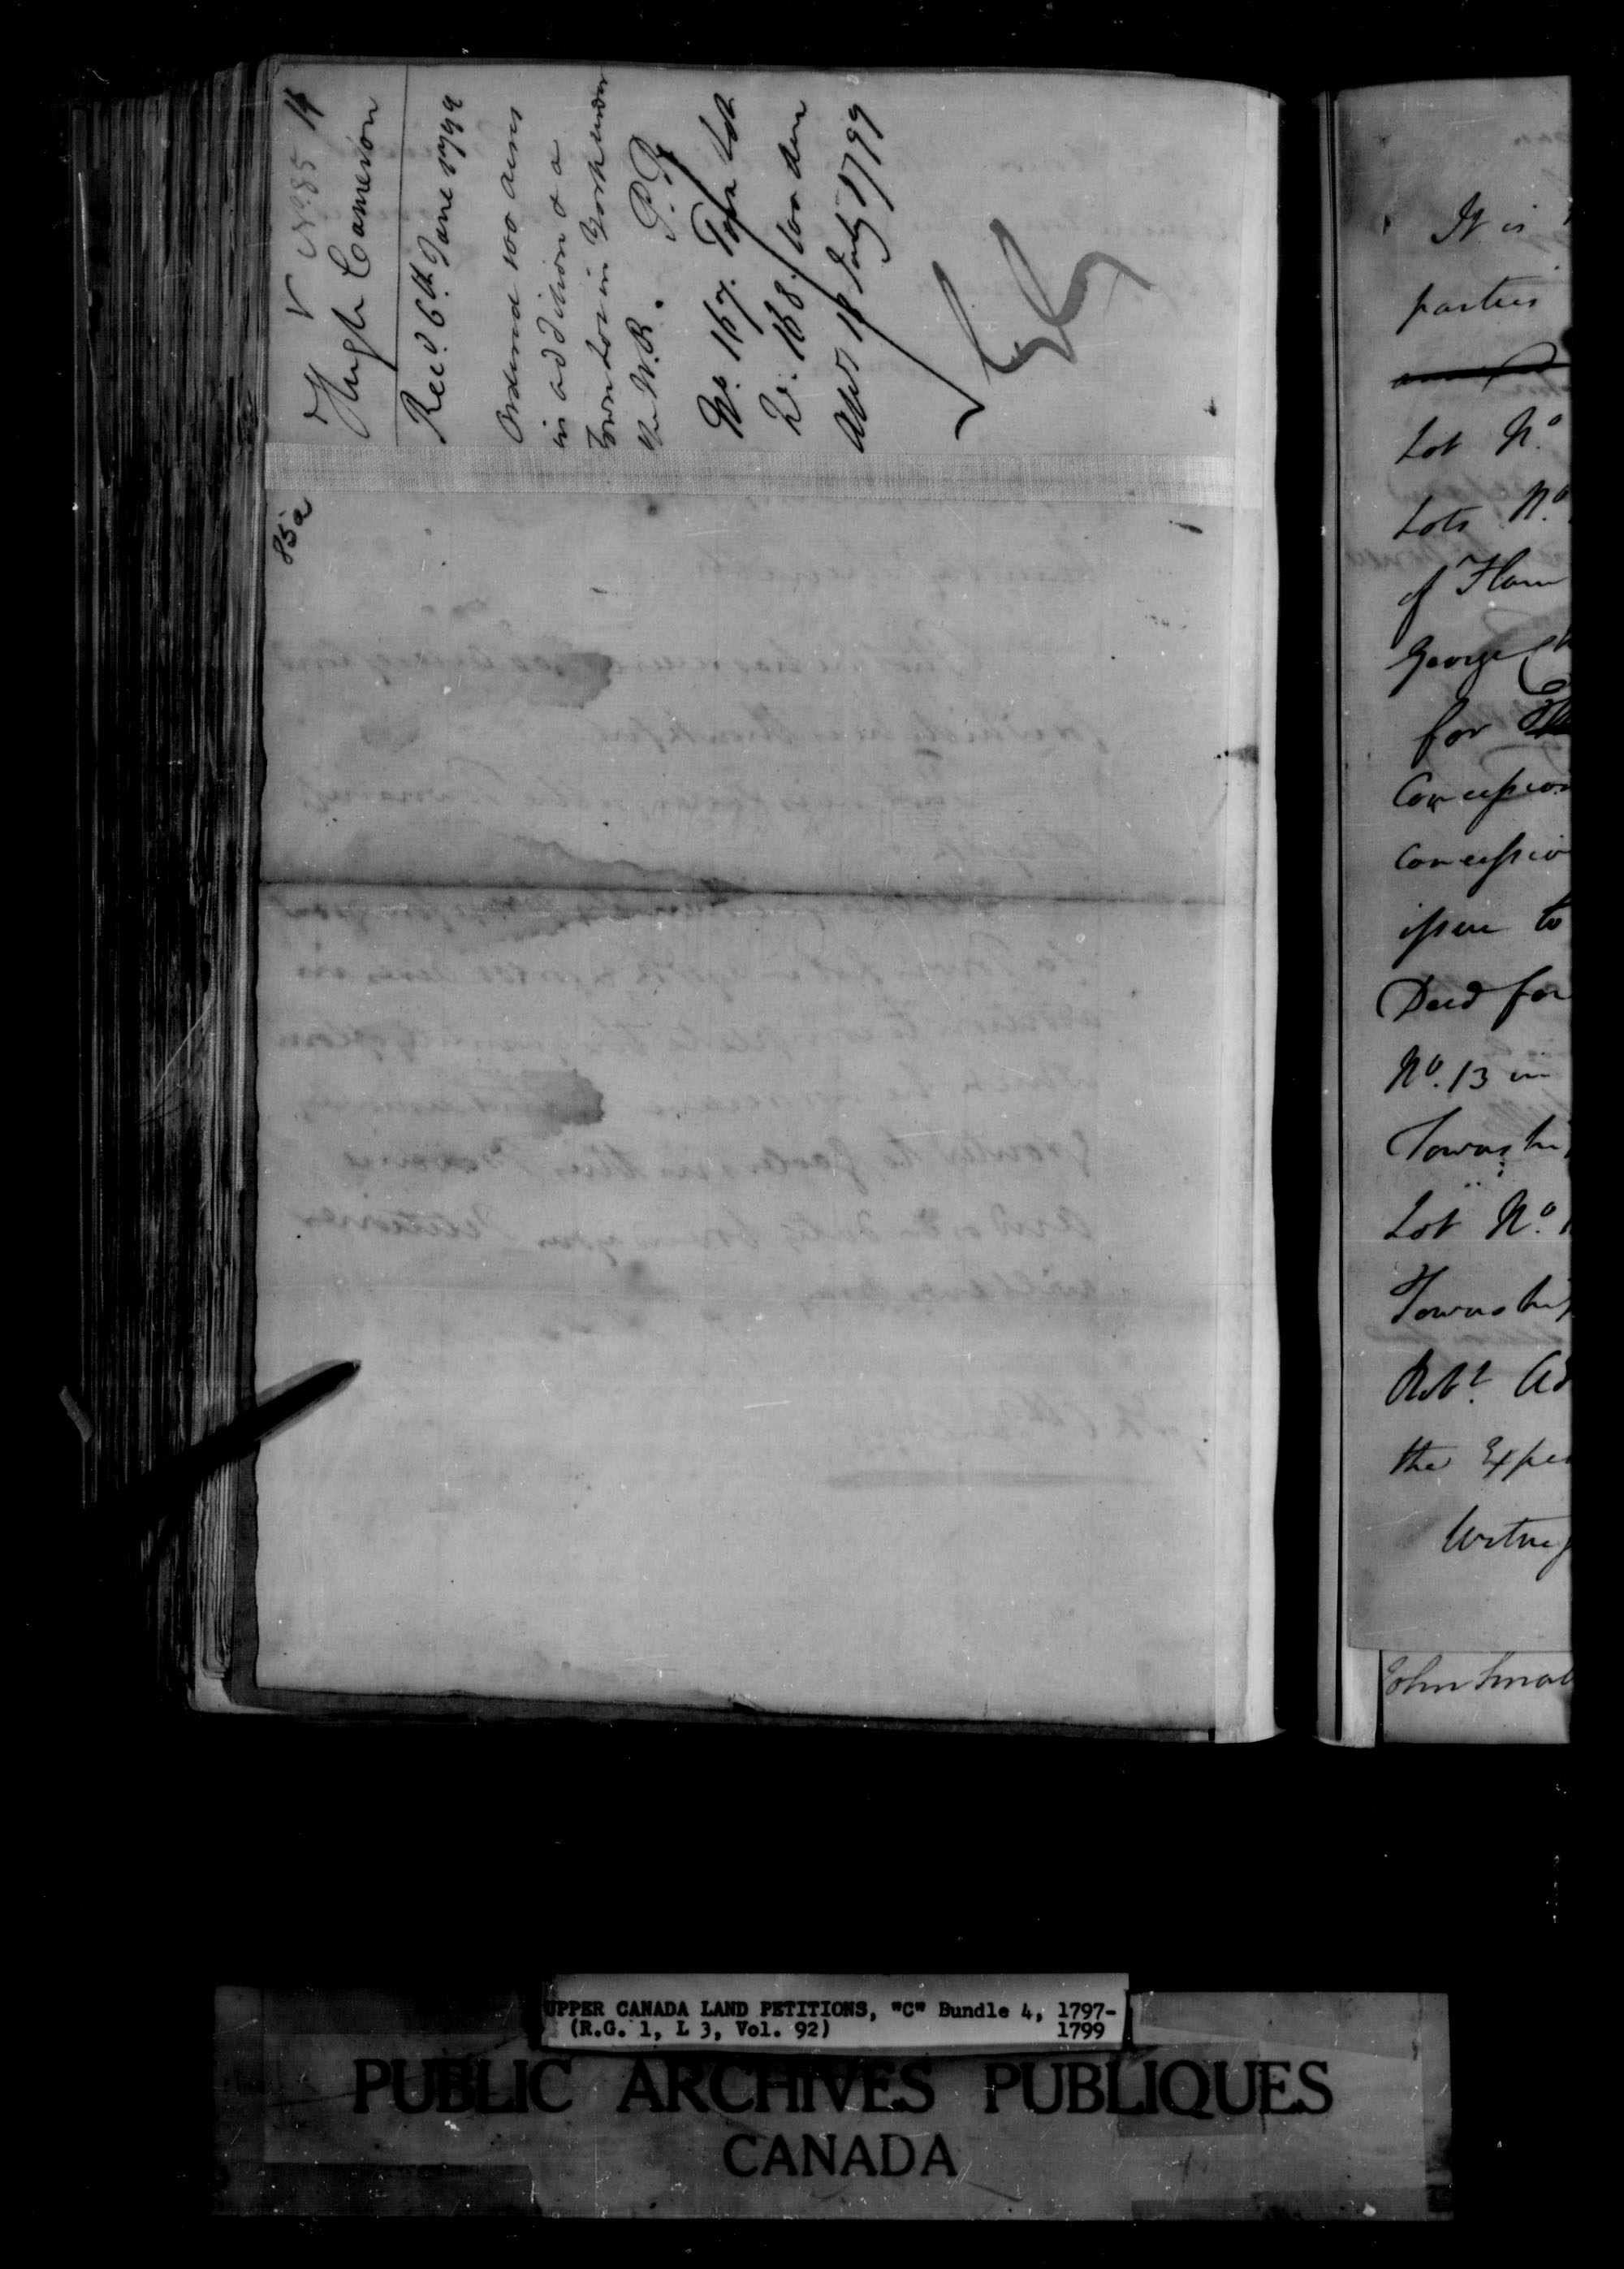 Title: Upper Canada Land Petitions (1763-1865) - Mikan Number: 205131 - Microform: c-1648